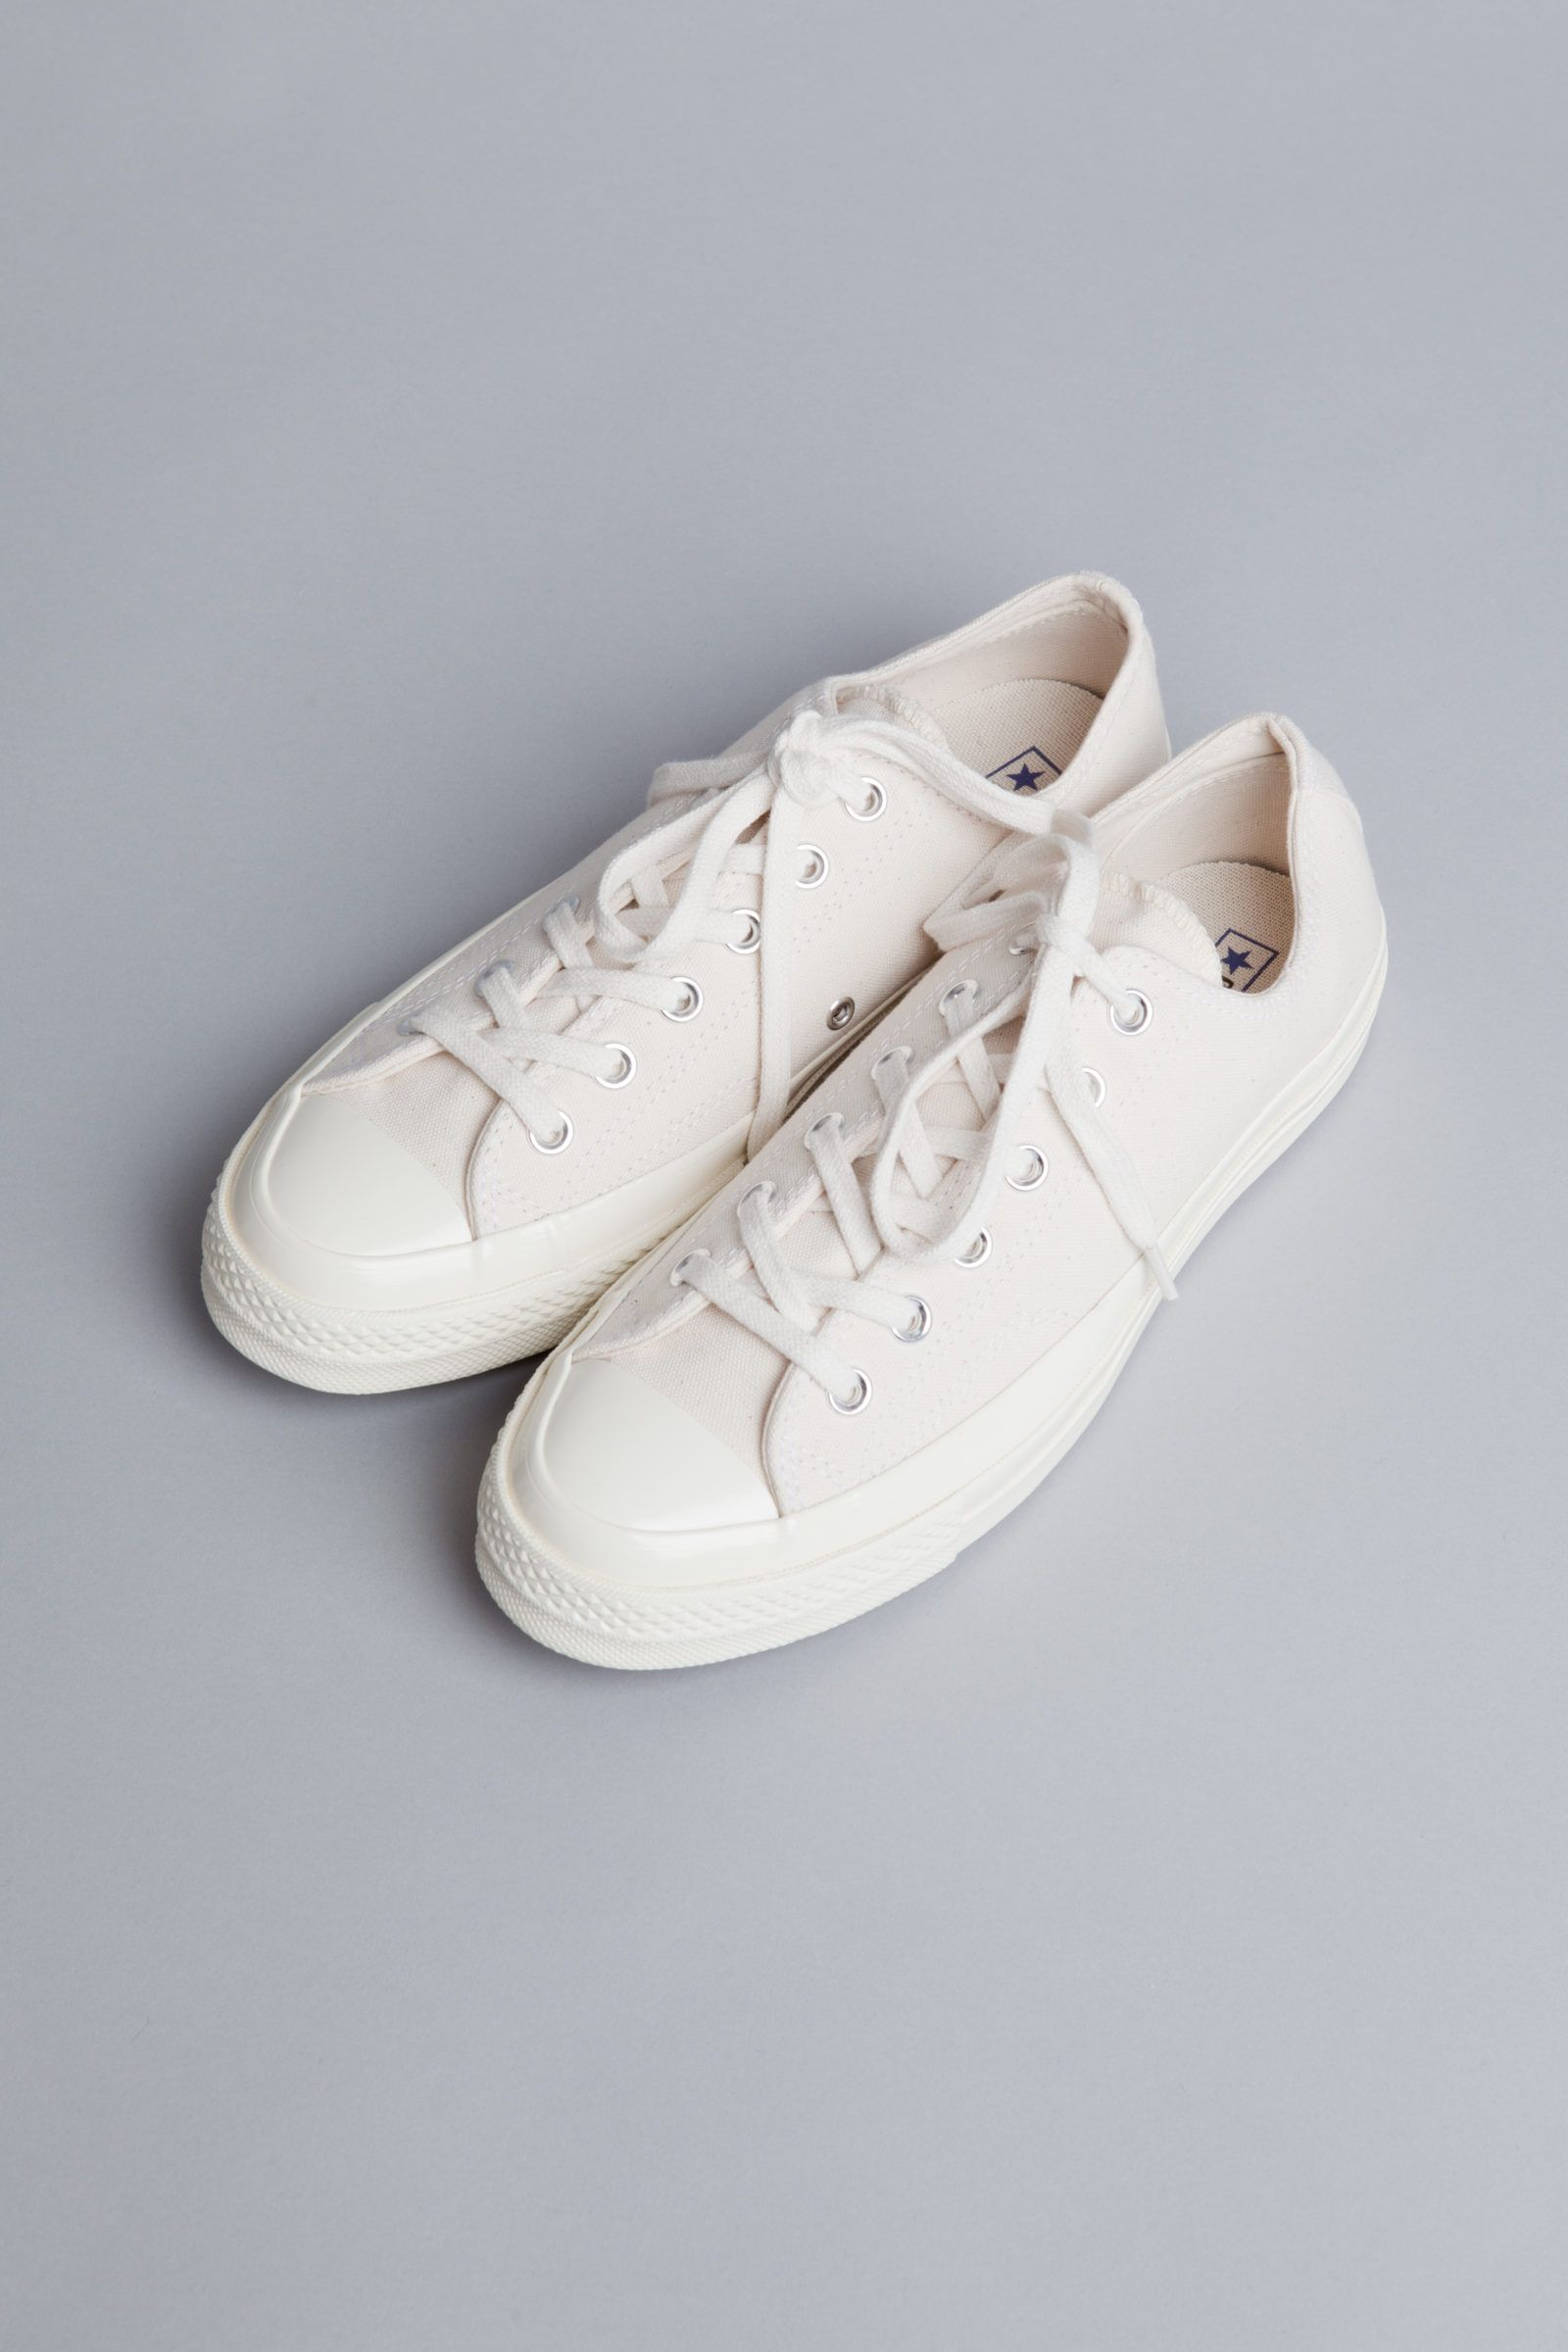 Converse Chuck Taylor 70 Low Natural . Centreville Store